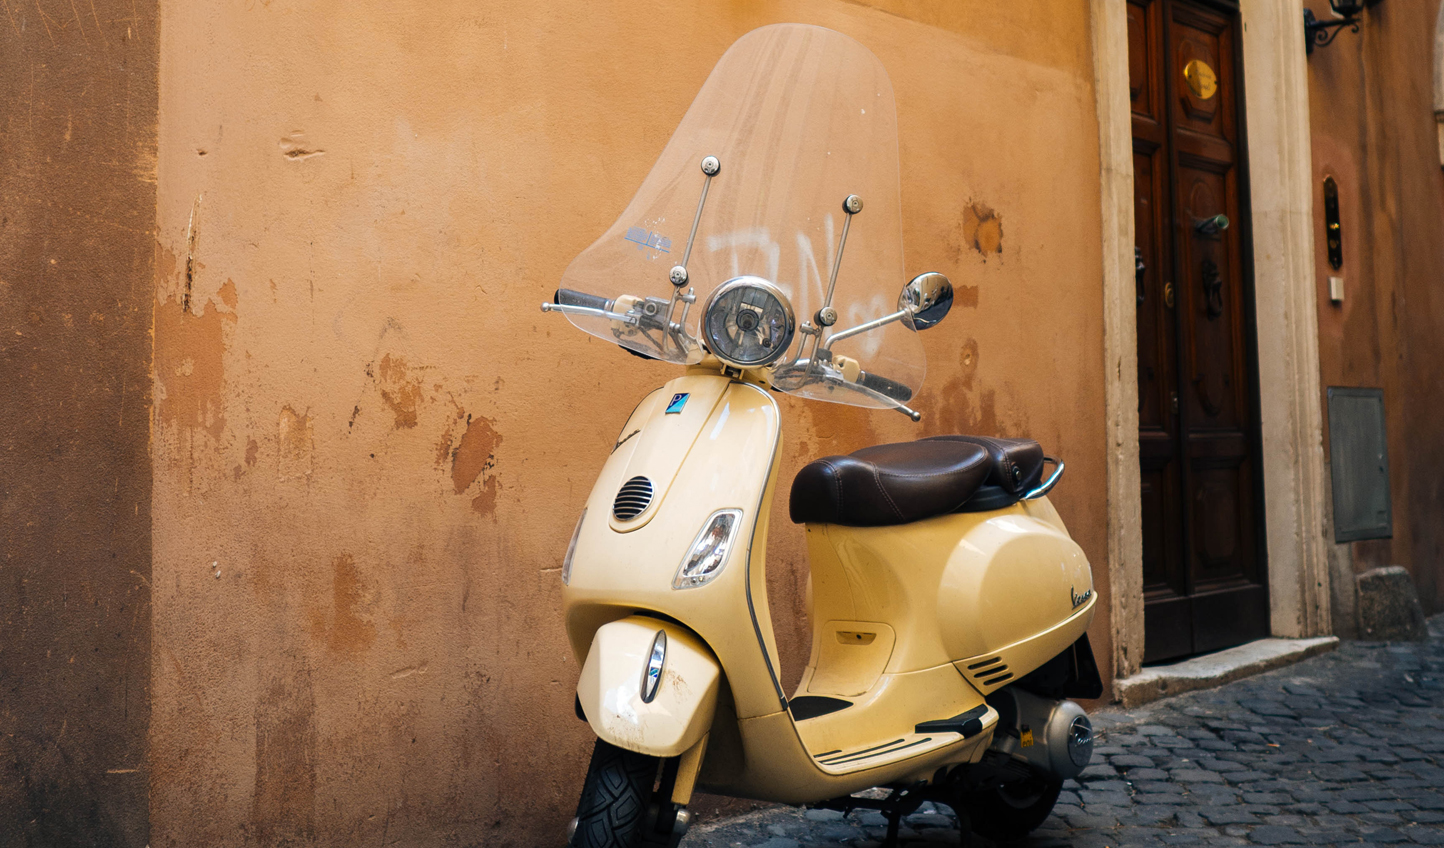 Whizz through the streets on a vintage Vespa